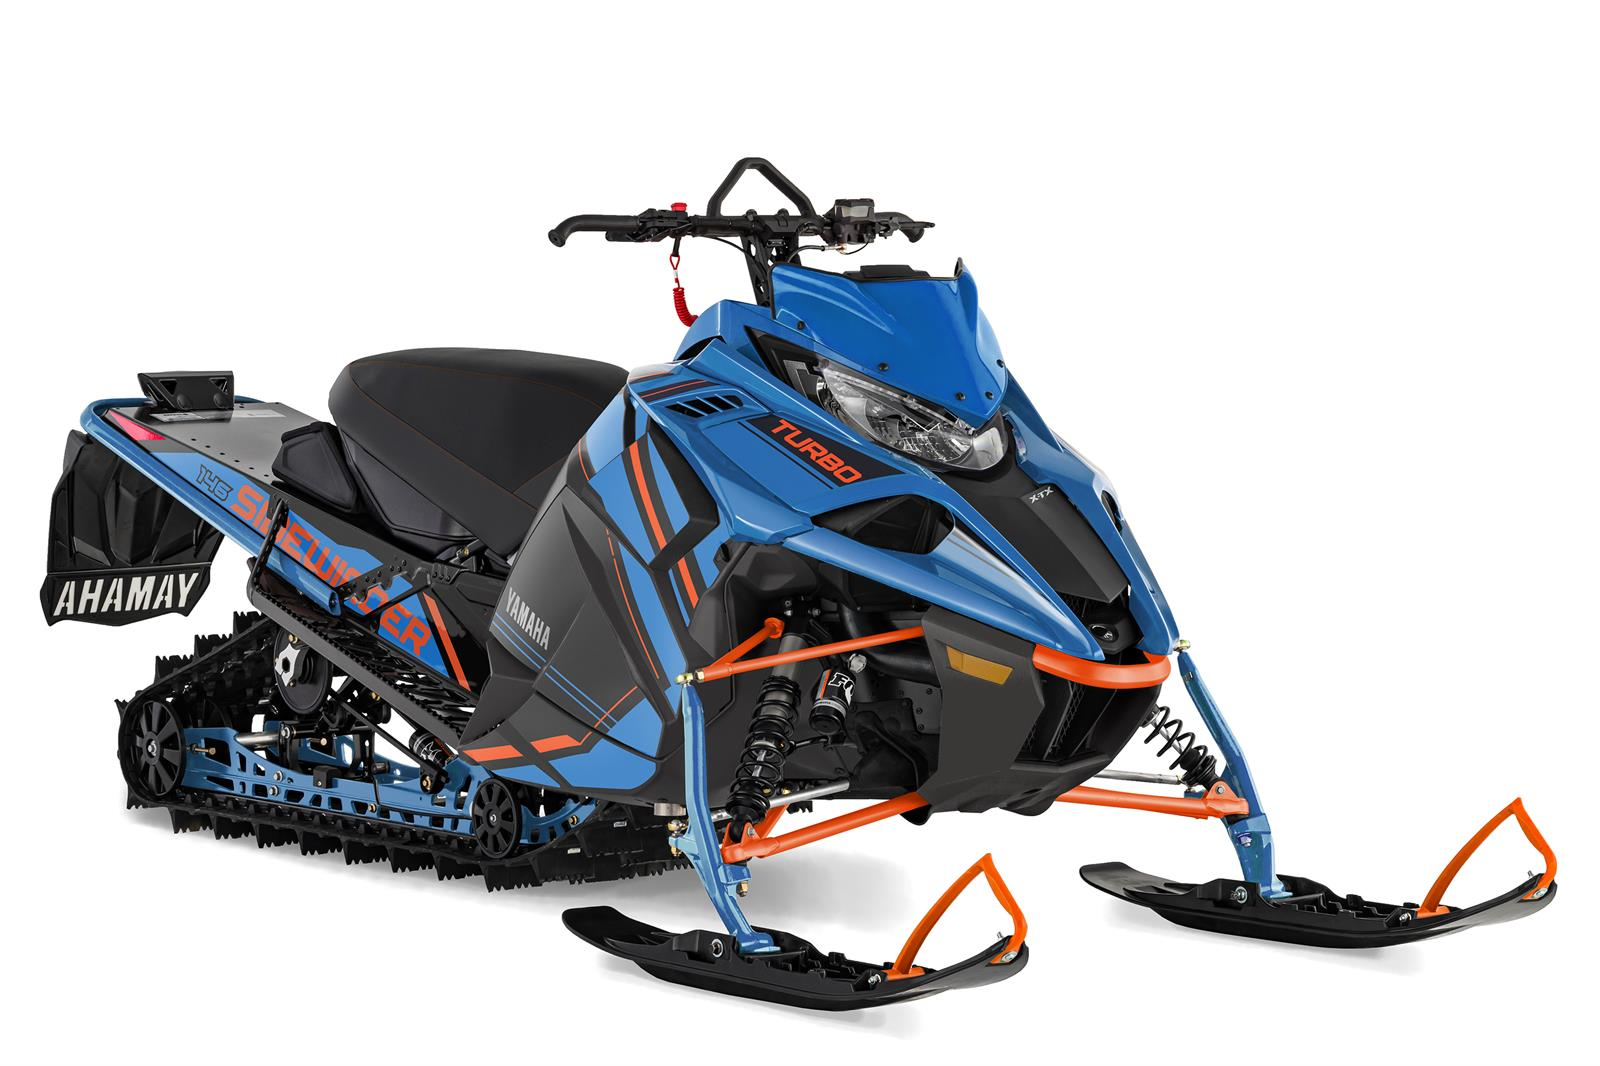 2022 Yamaha Sidewinder X-TX SE 146 in Derry, New Hampshire - Photo 2